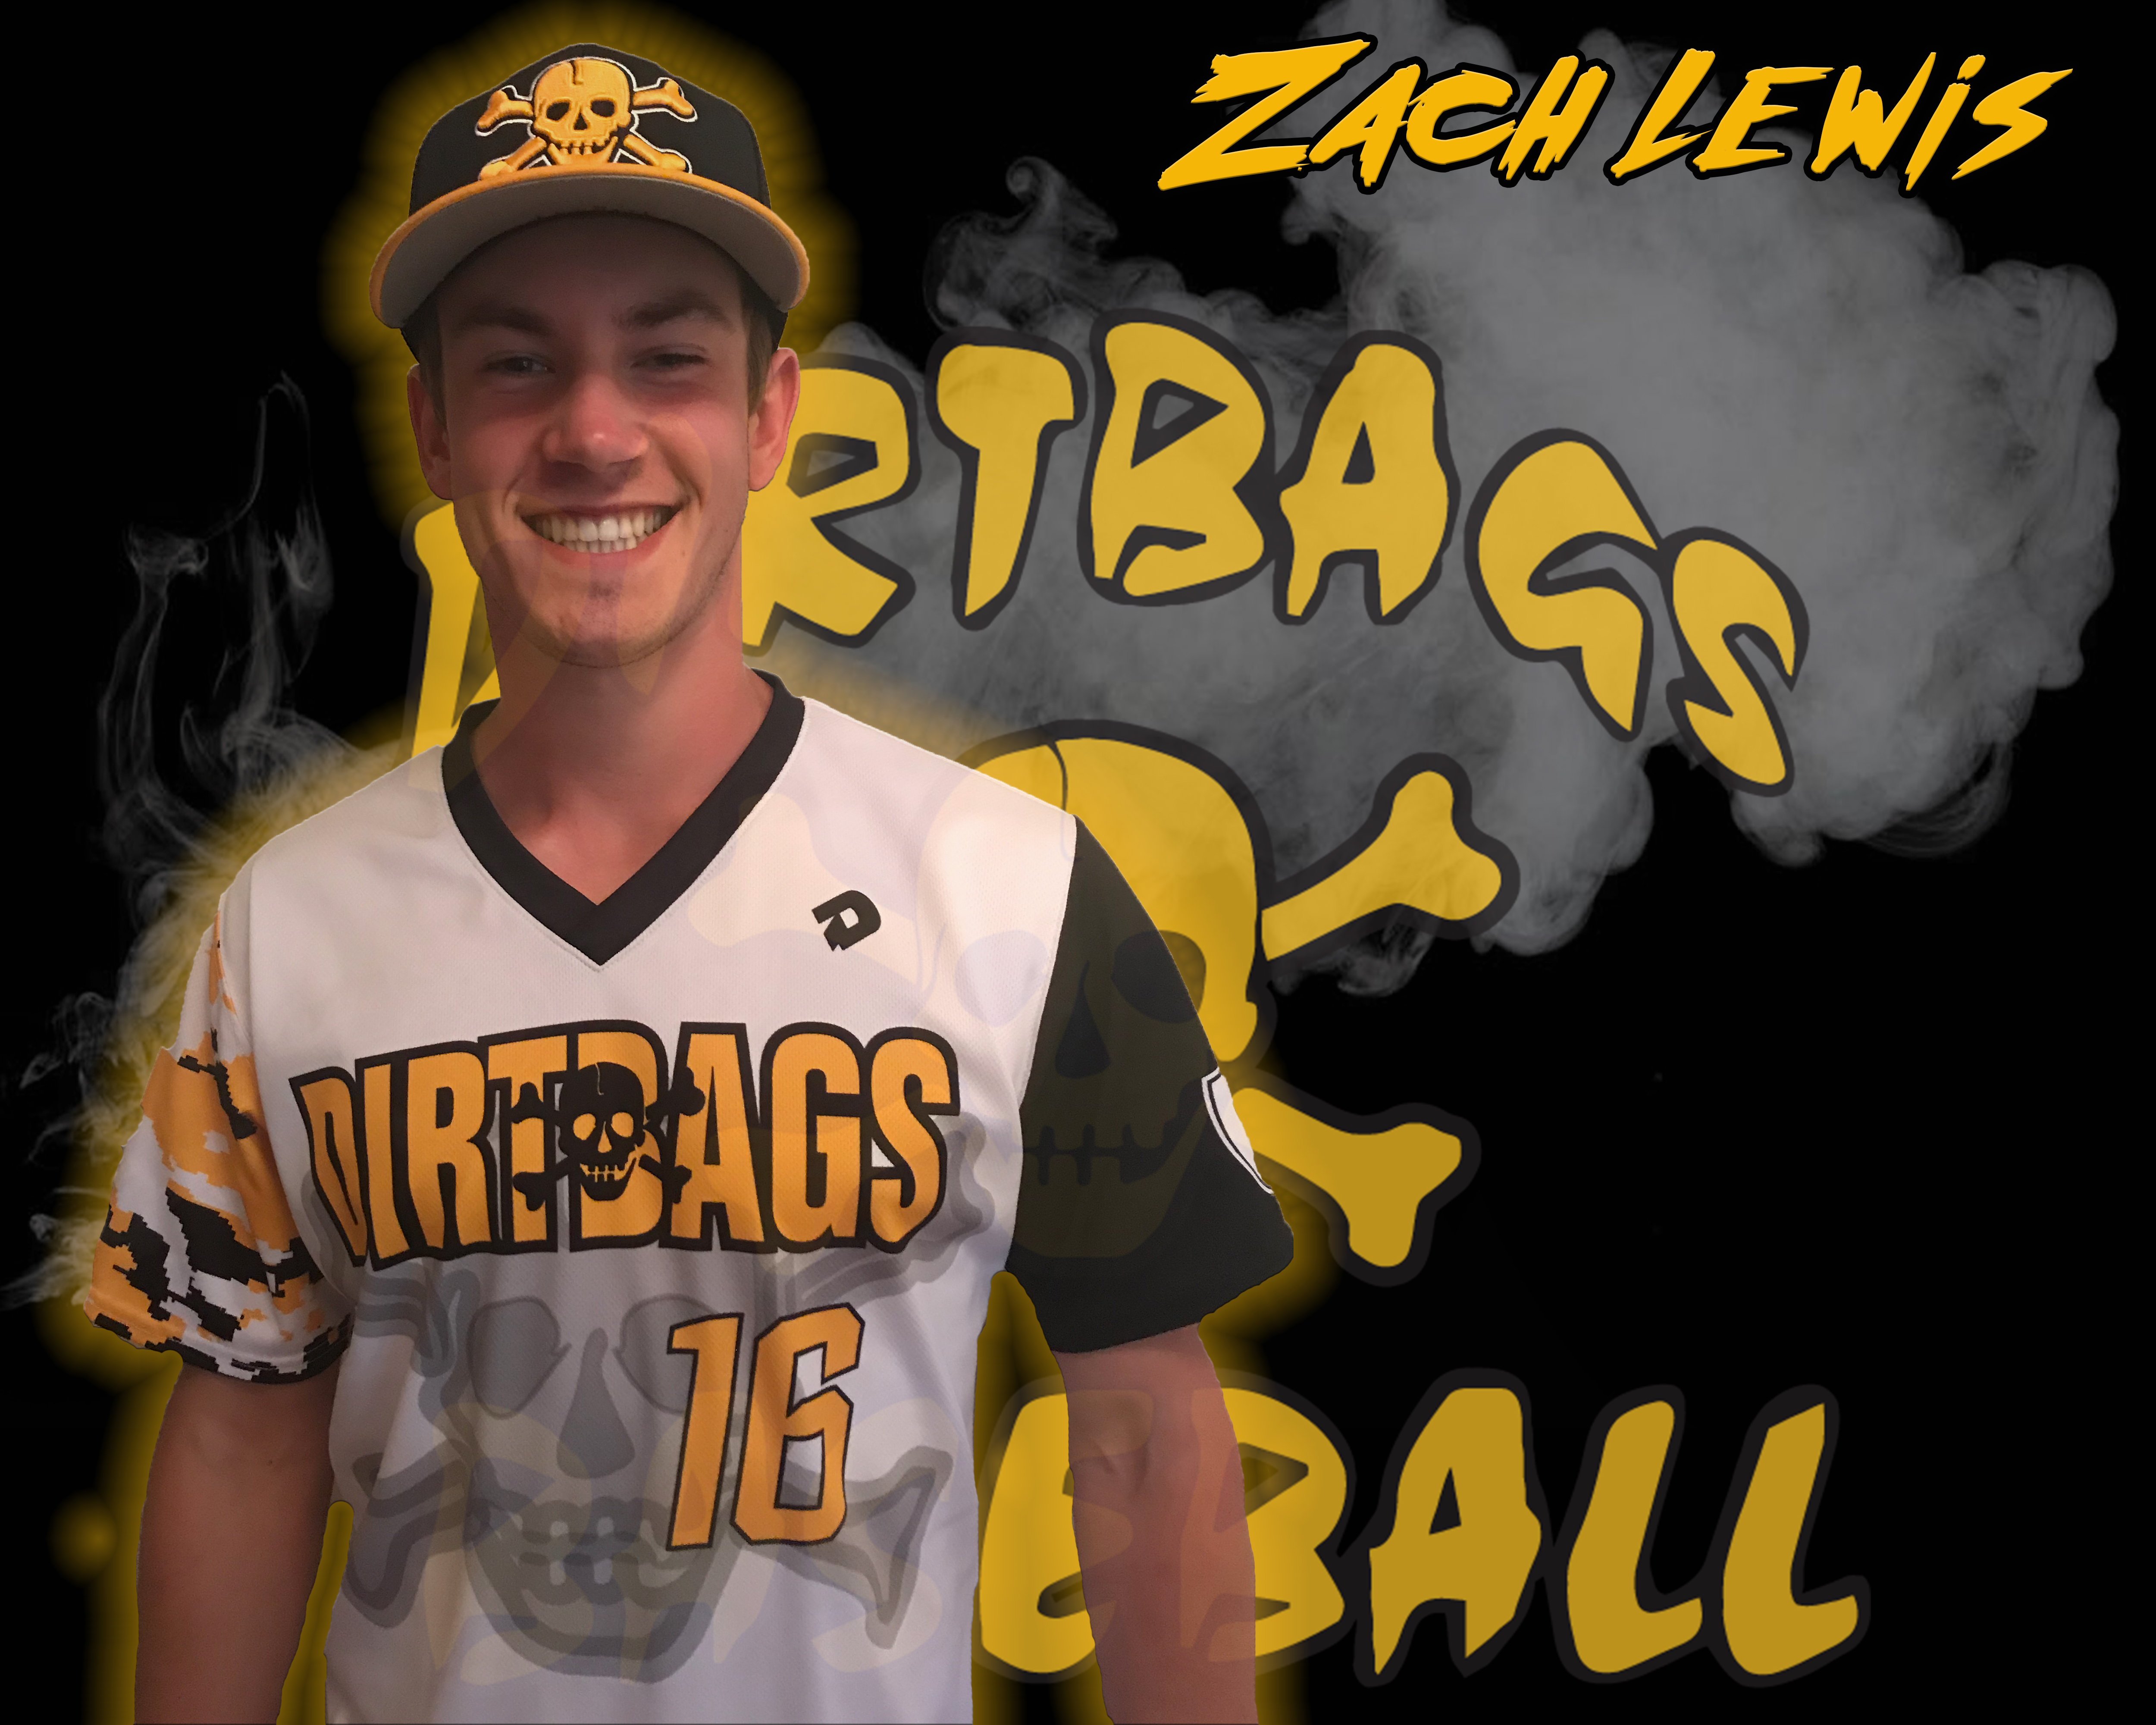 Testimonial Tuesday: Zach Lewis